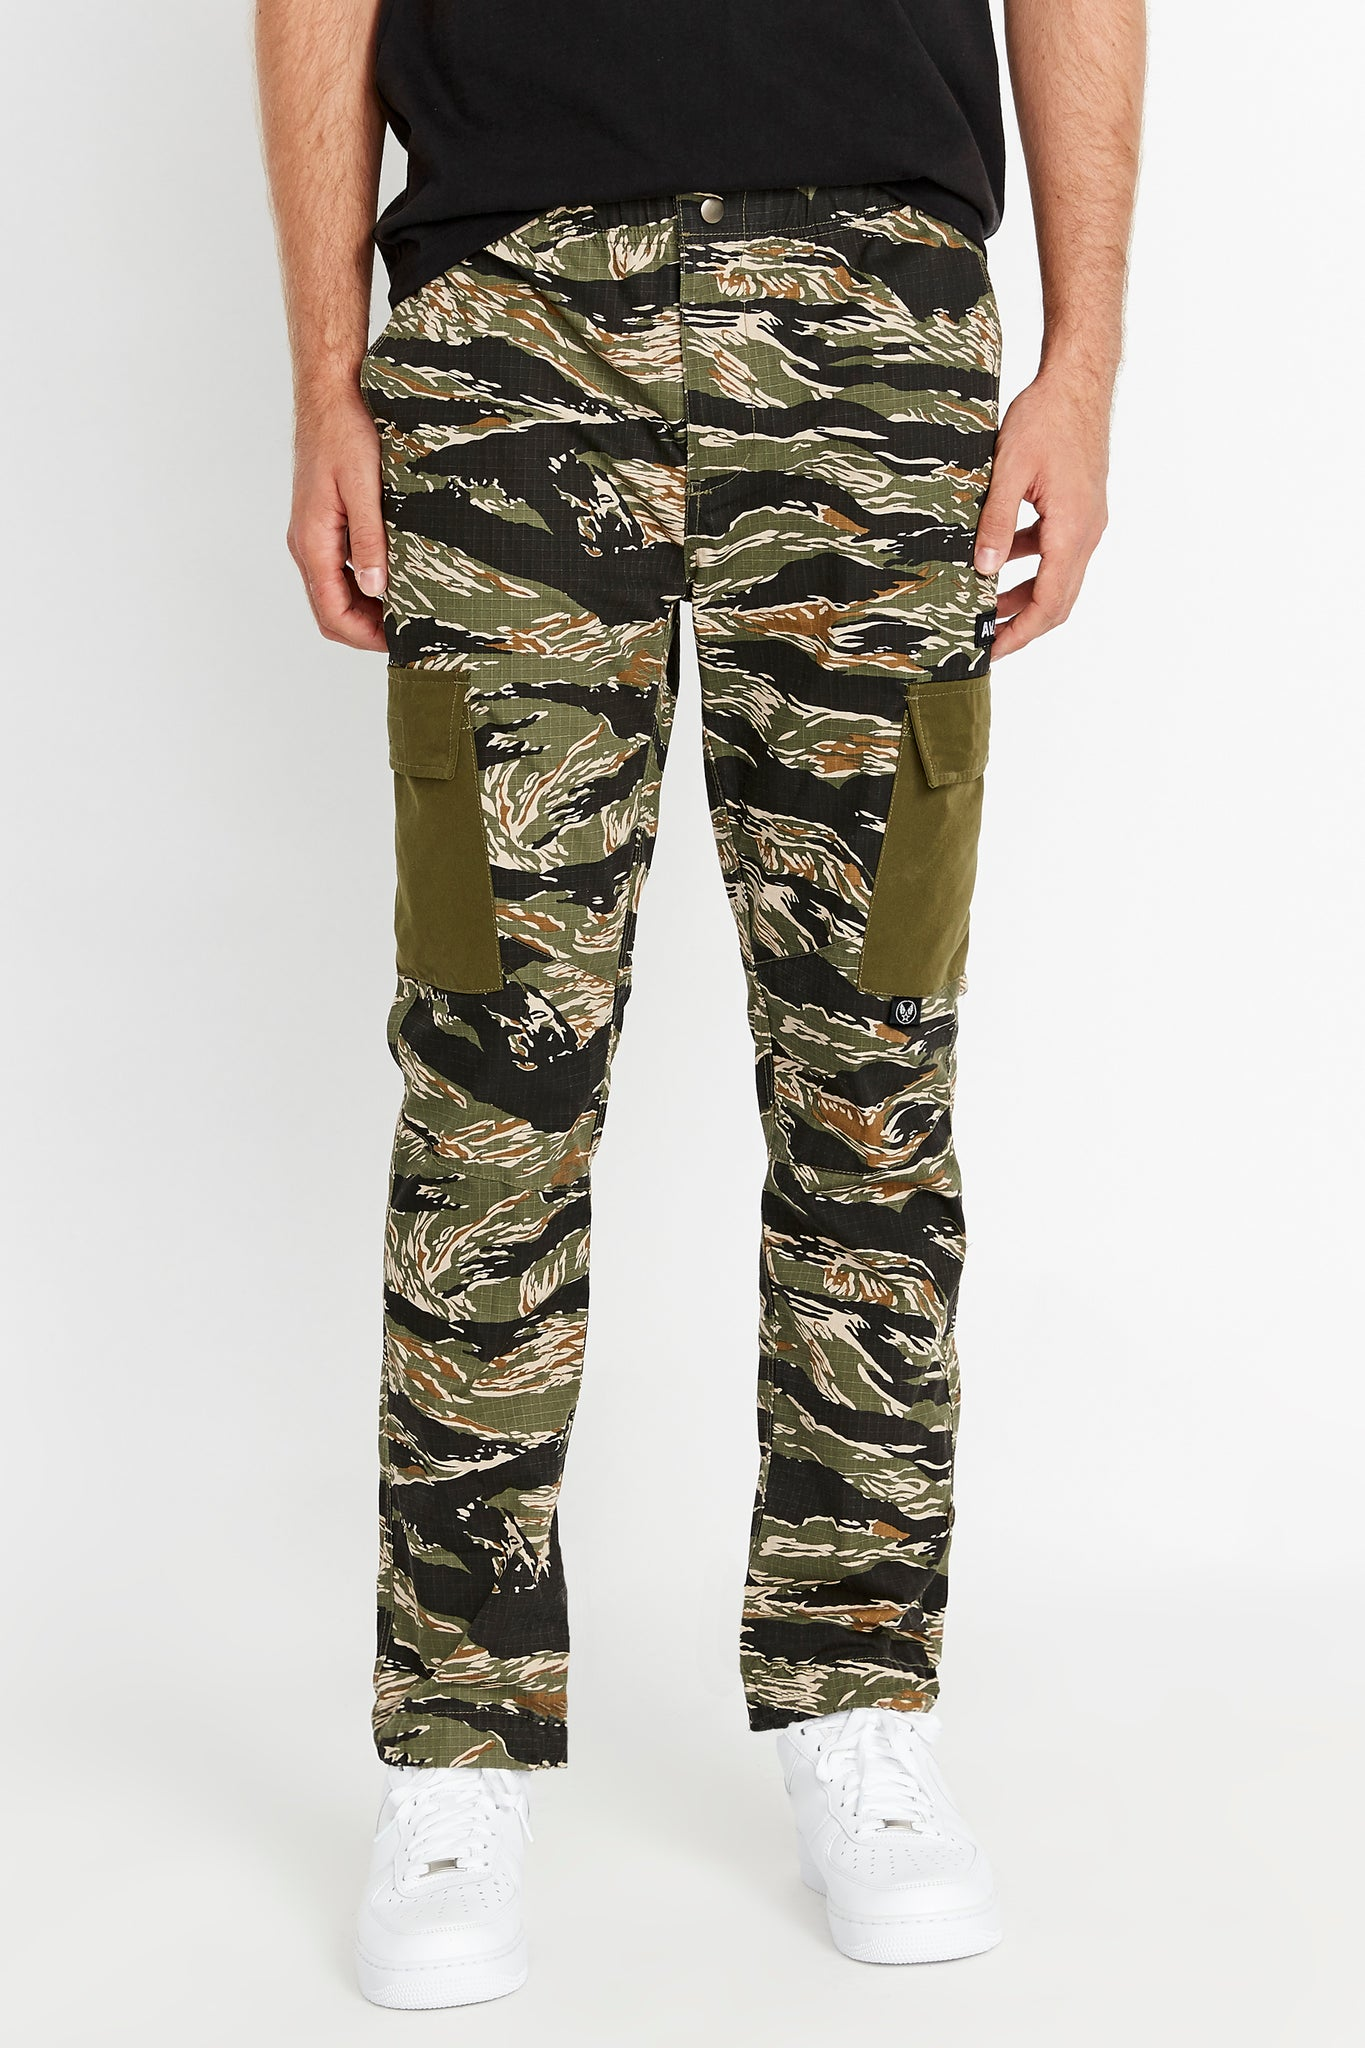 Front view of tigerstripe camo print pants with side cargo pockets in solid color